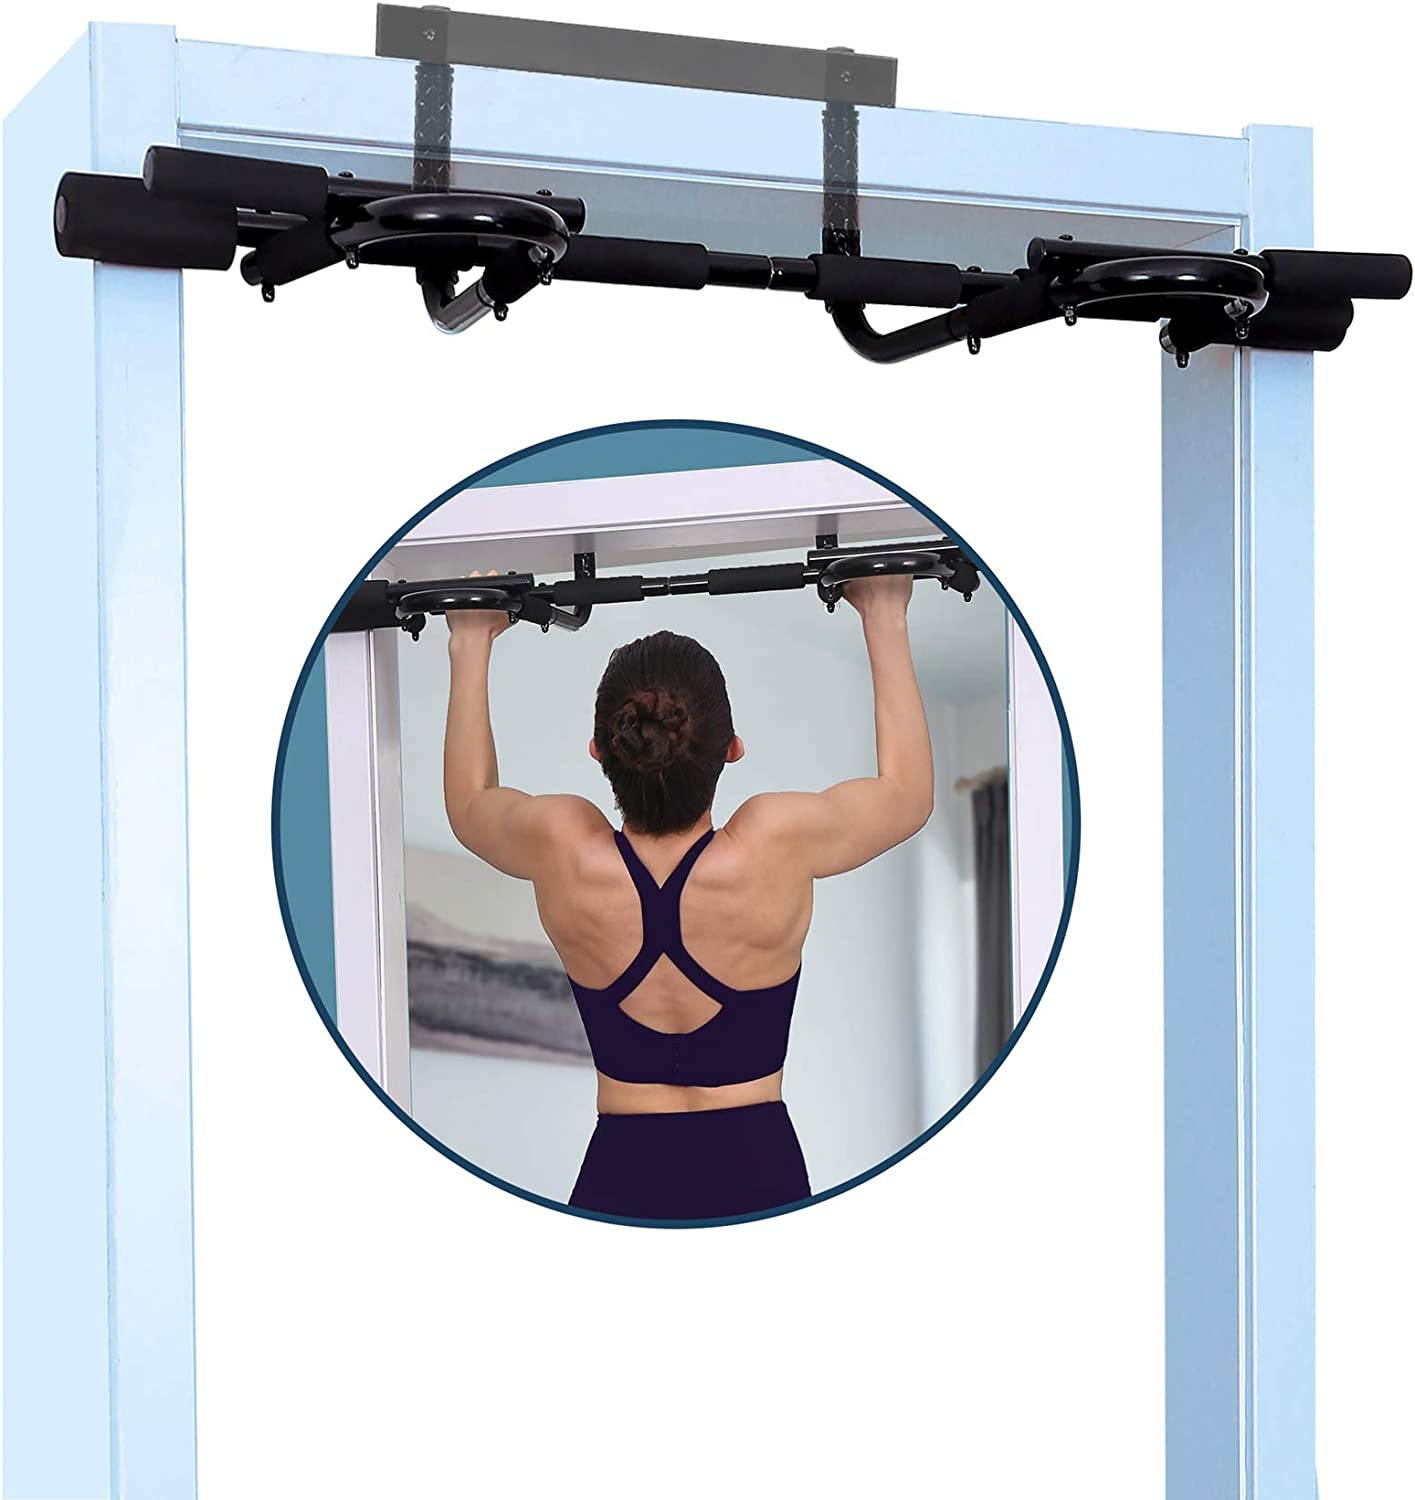 Walmann Doorway Pull Up Bar Fitness for Home Chin-up Strength Training Bar Gym System Exercise Multifunction Pullup One-Piece No Drilling Upper Body Trainer(Upgraded)